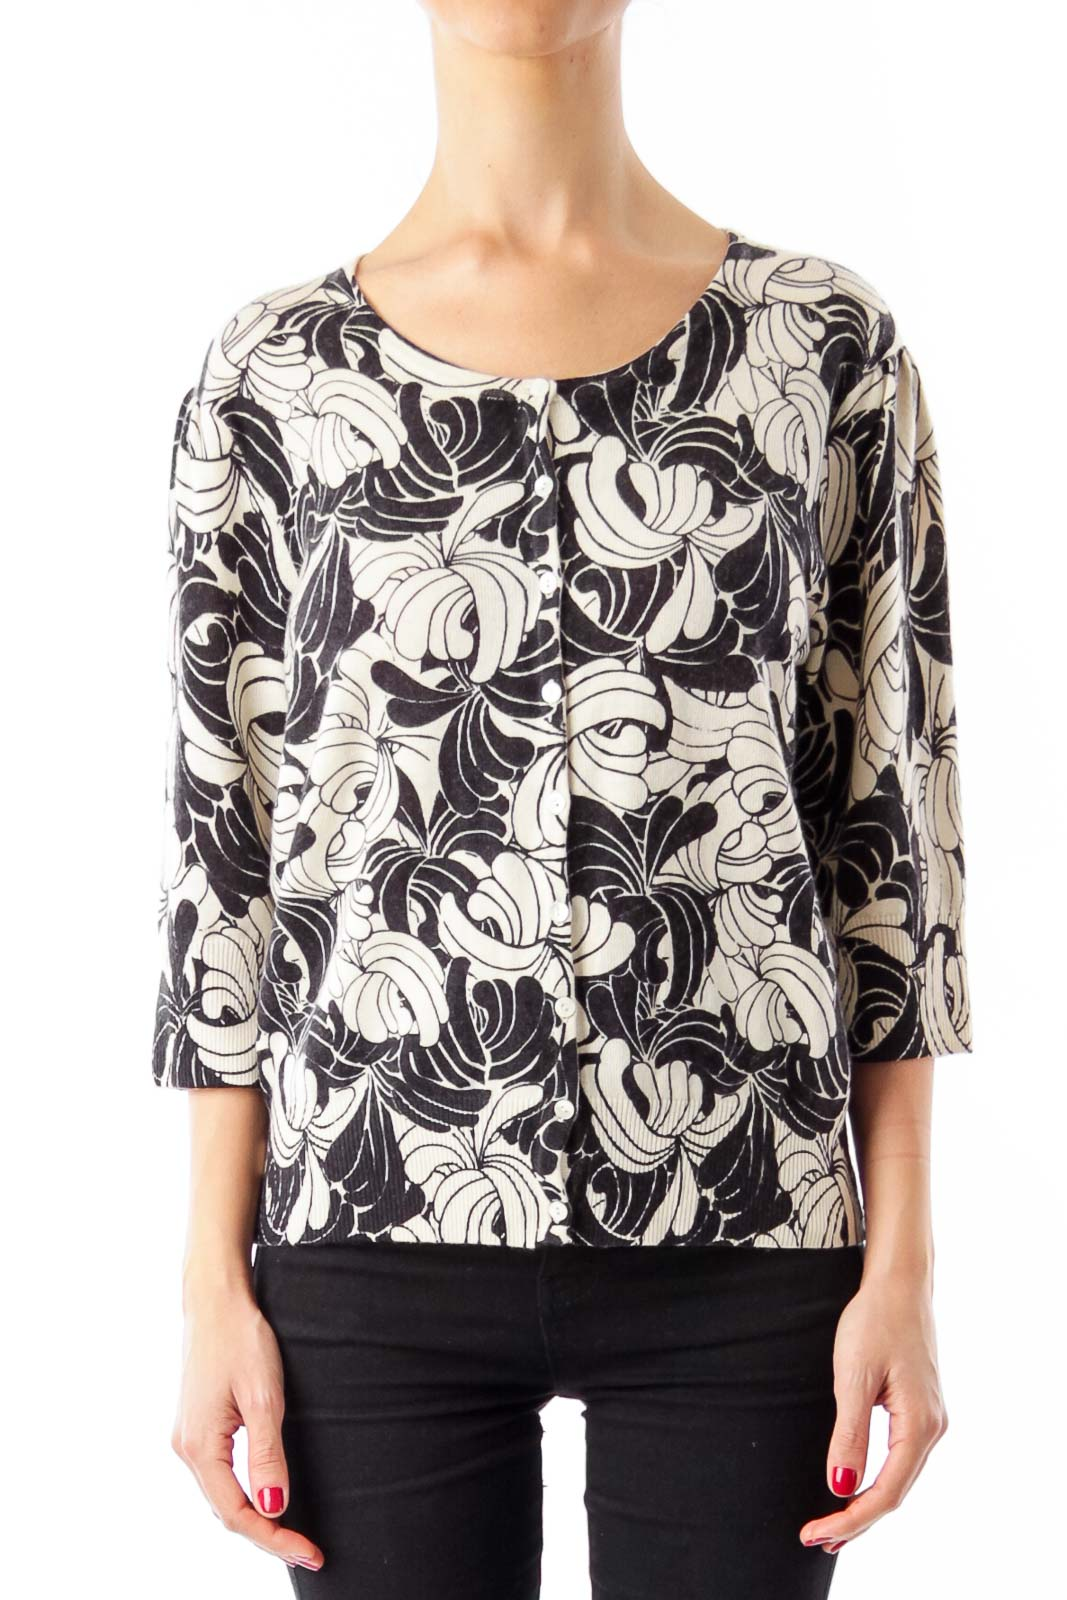 Black & White Flower Print Cropped Sweater Front